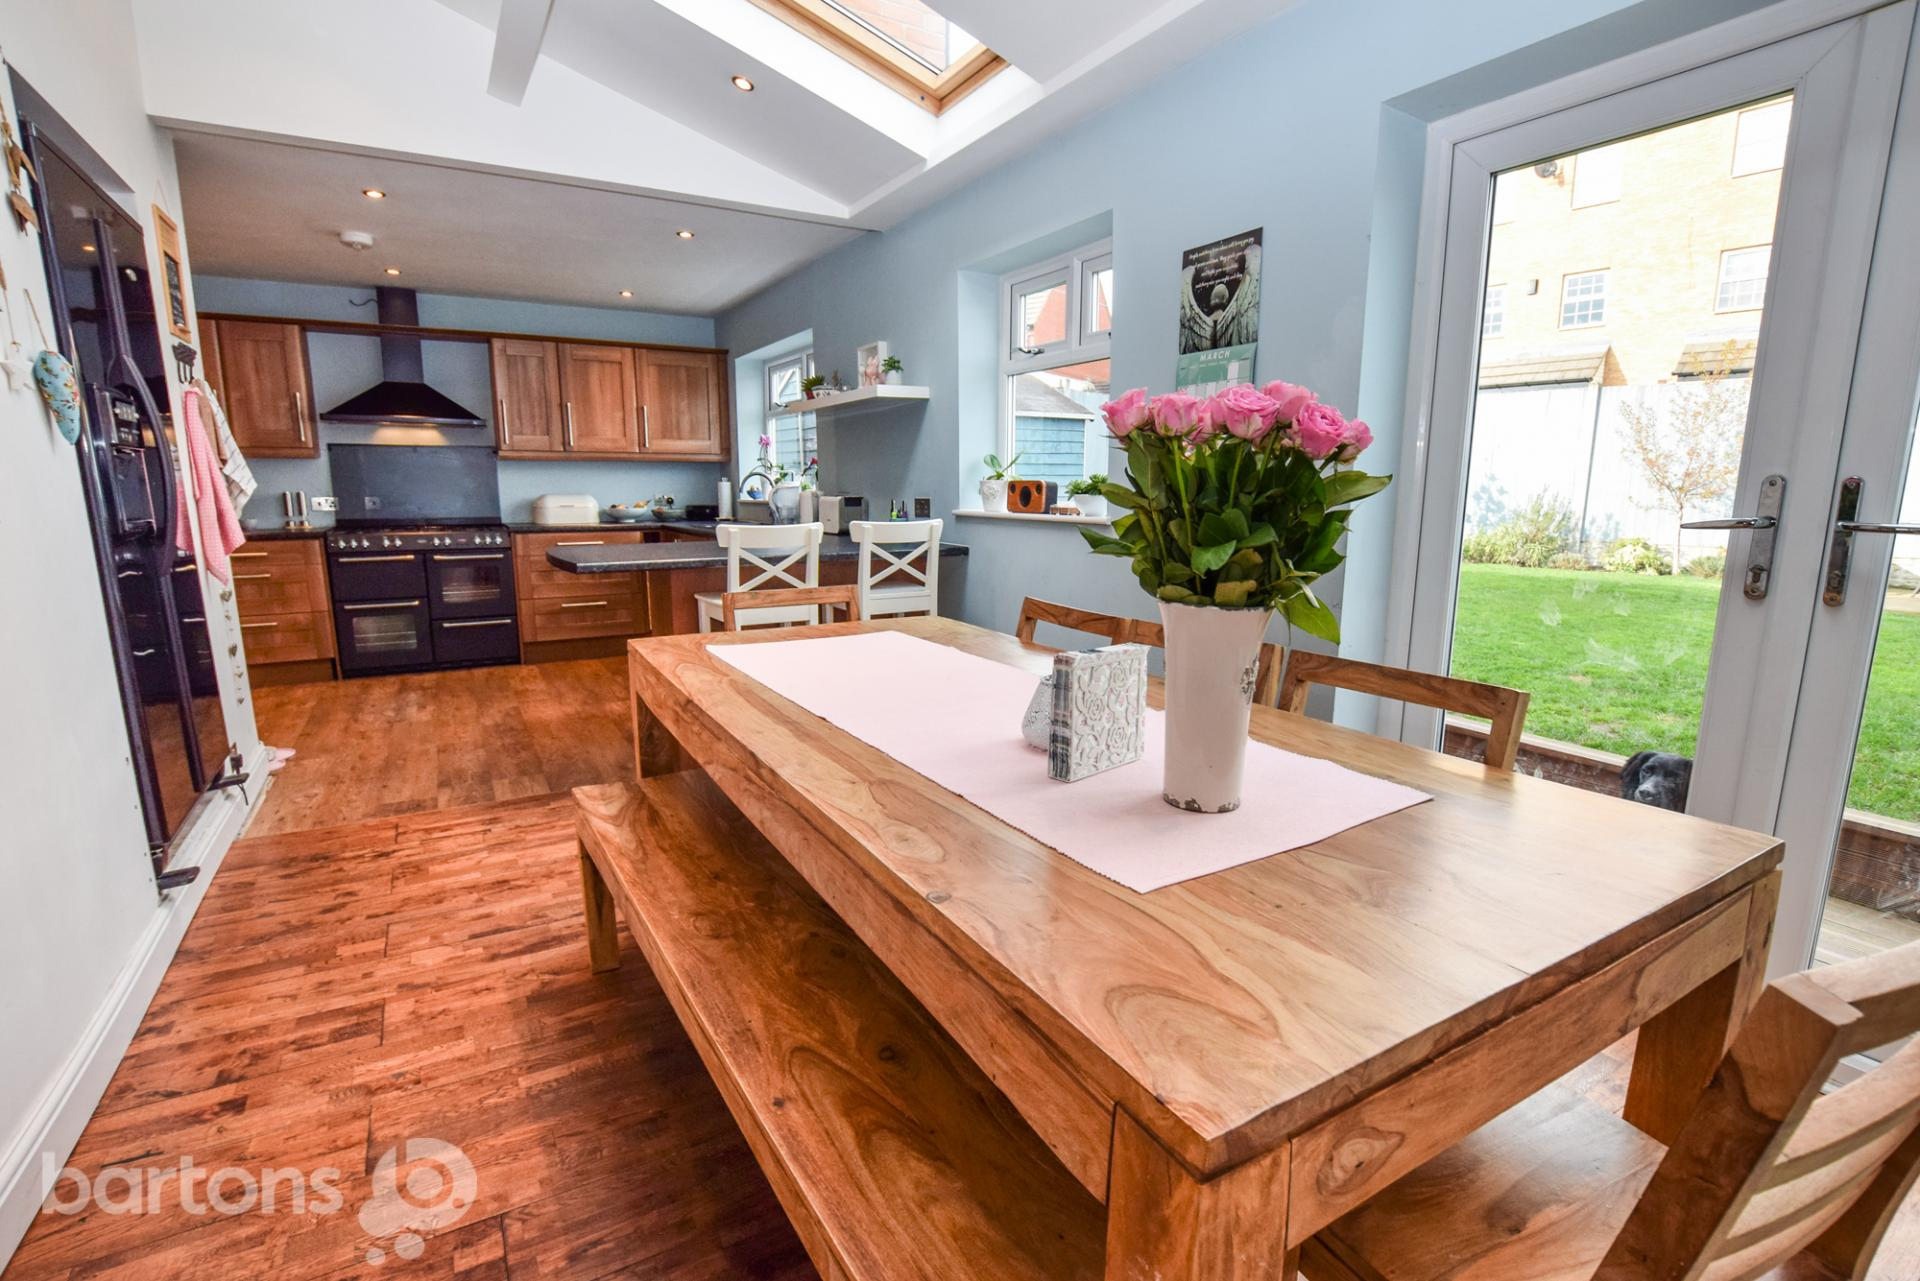 4 Bedroom House For Sale In Rotherham